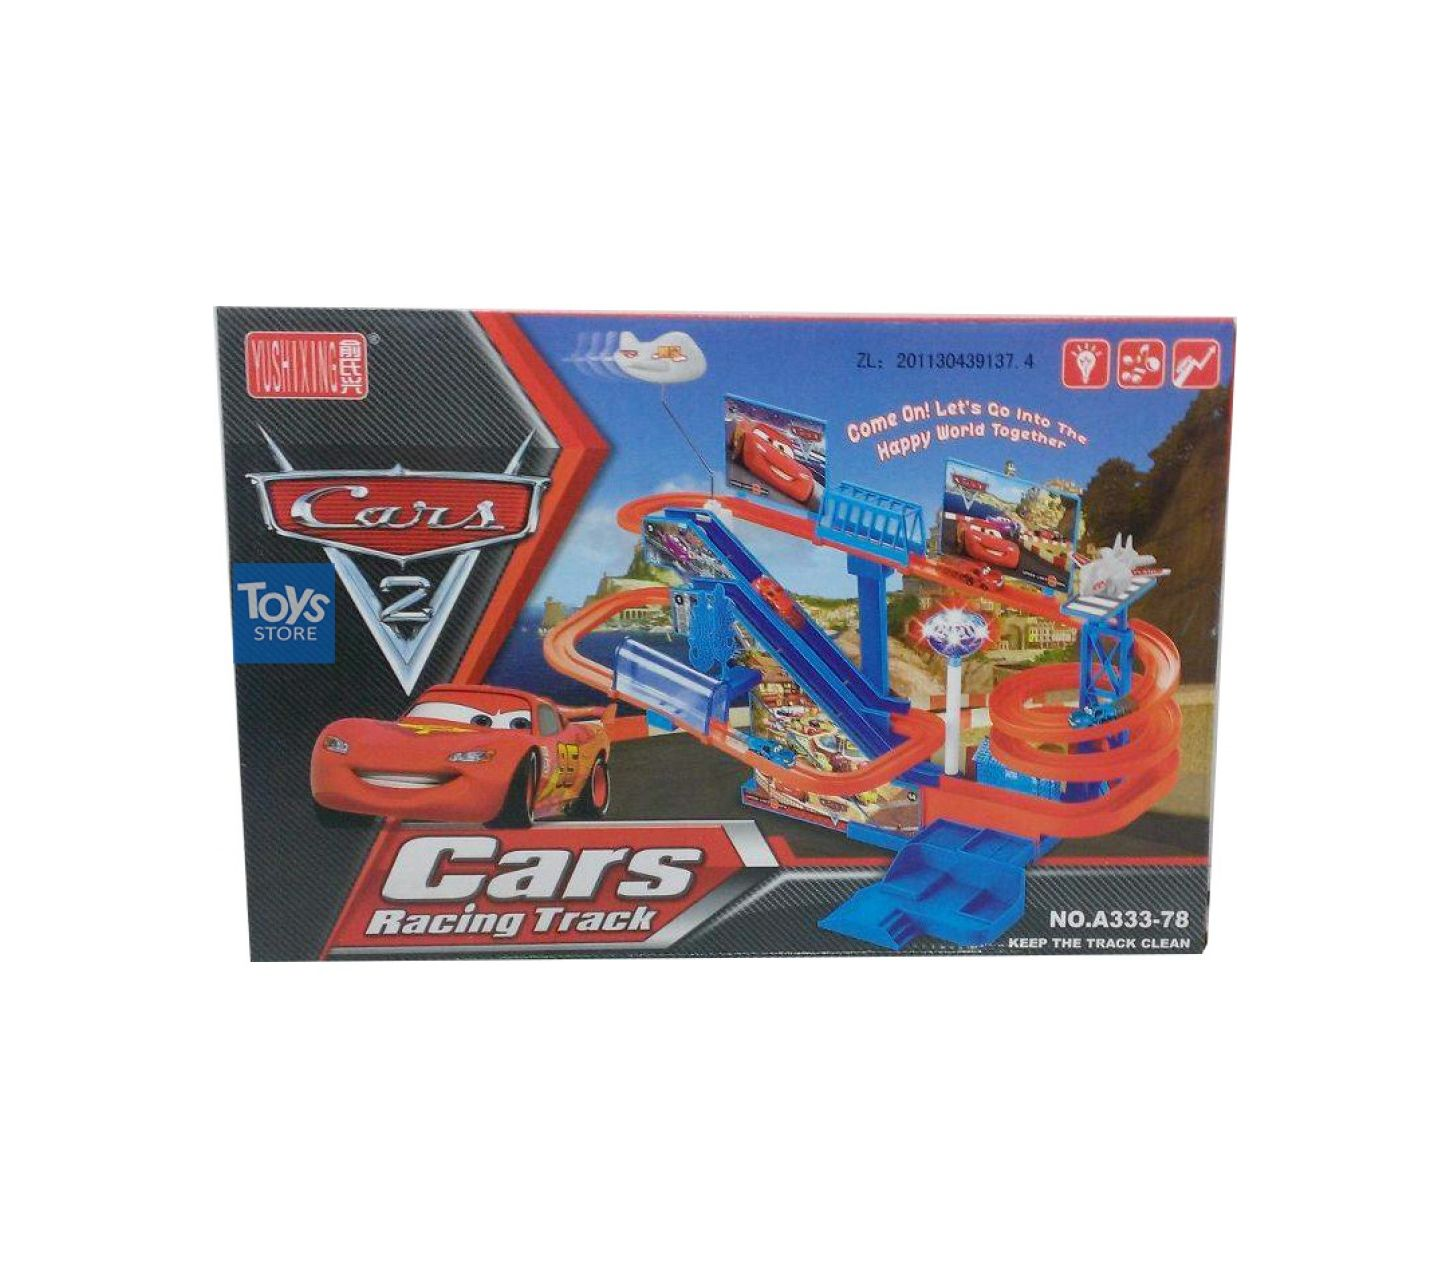 CARS 2 RACING TRACK By Toys Store